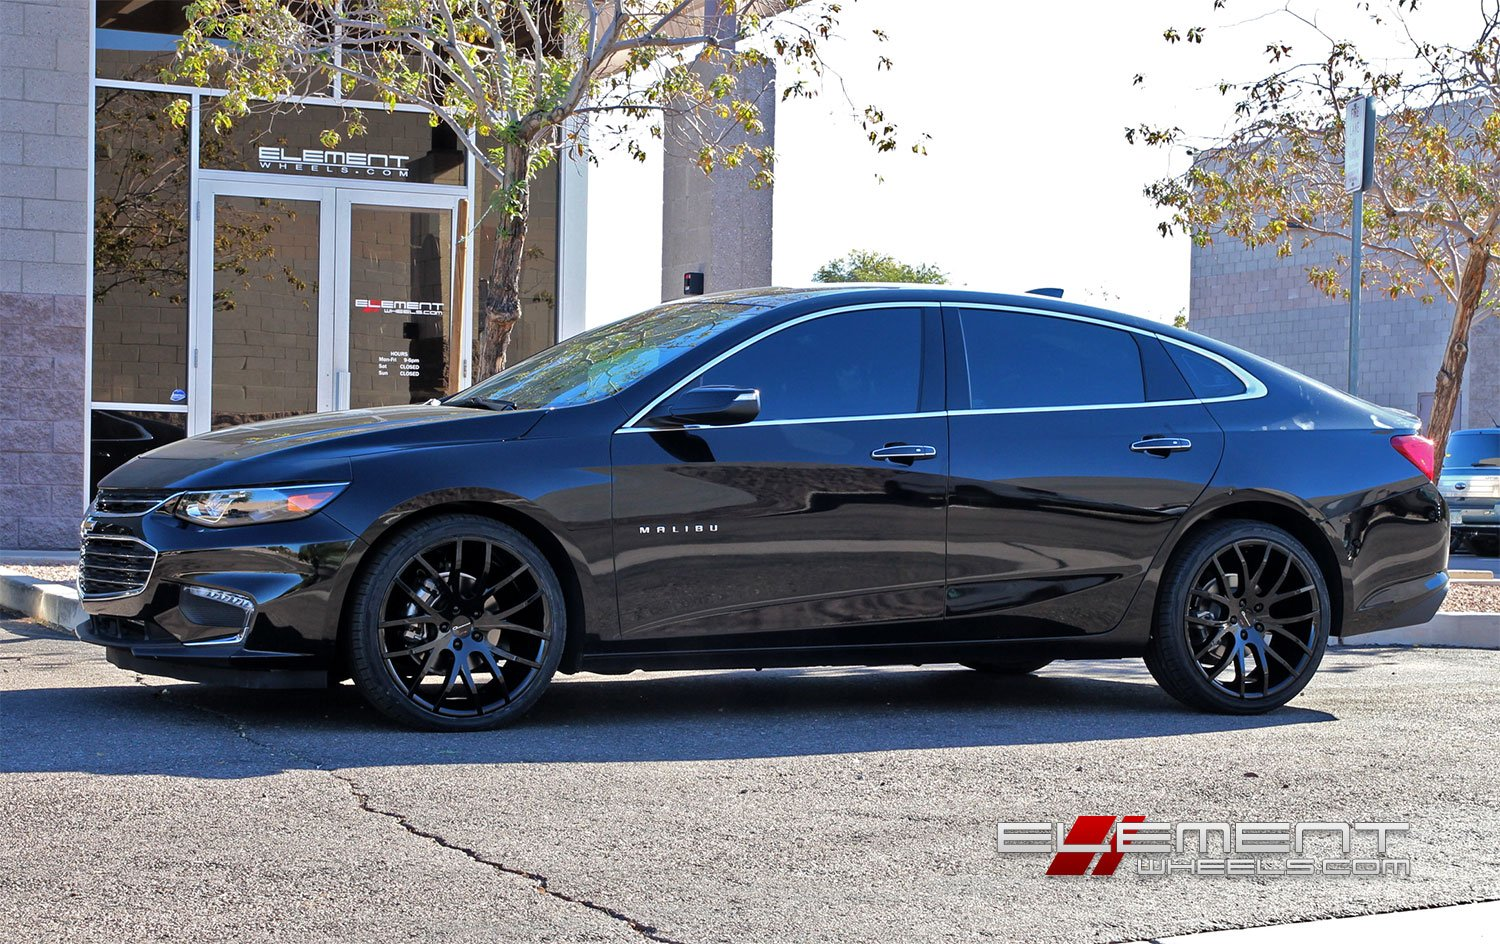 Chevrolet Malibu Wheels Custom Rim And Tire Packages